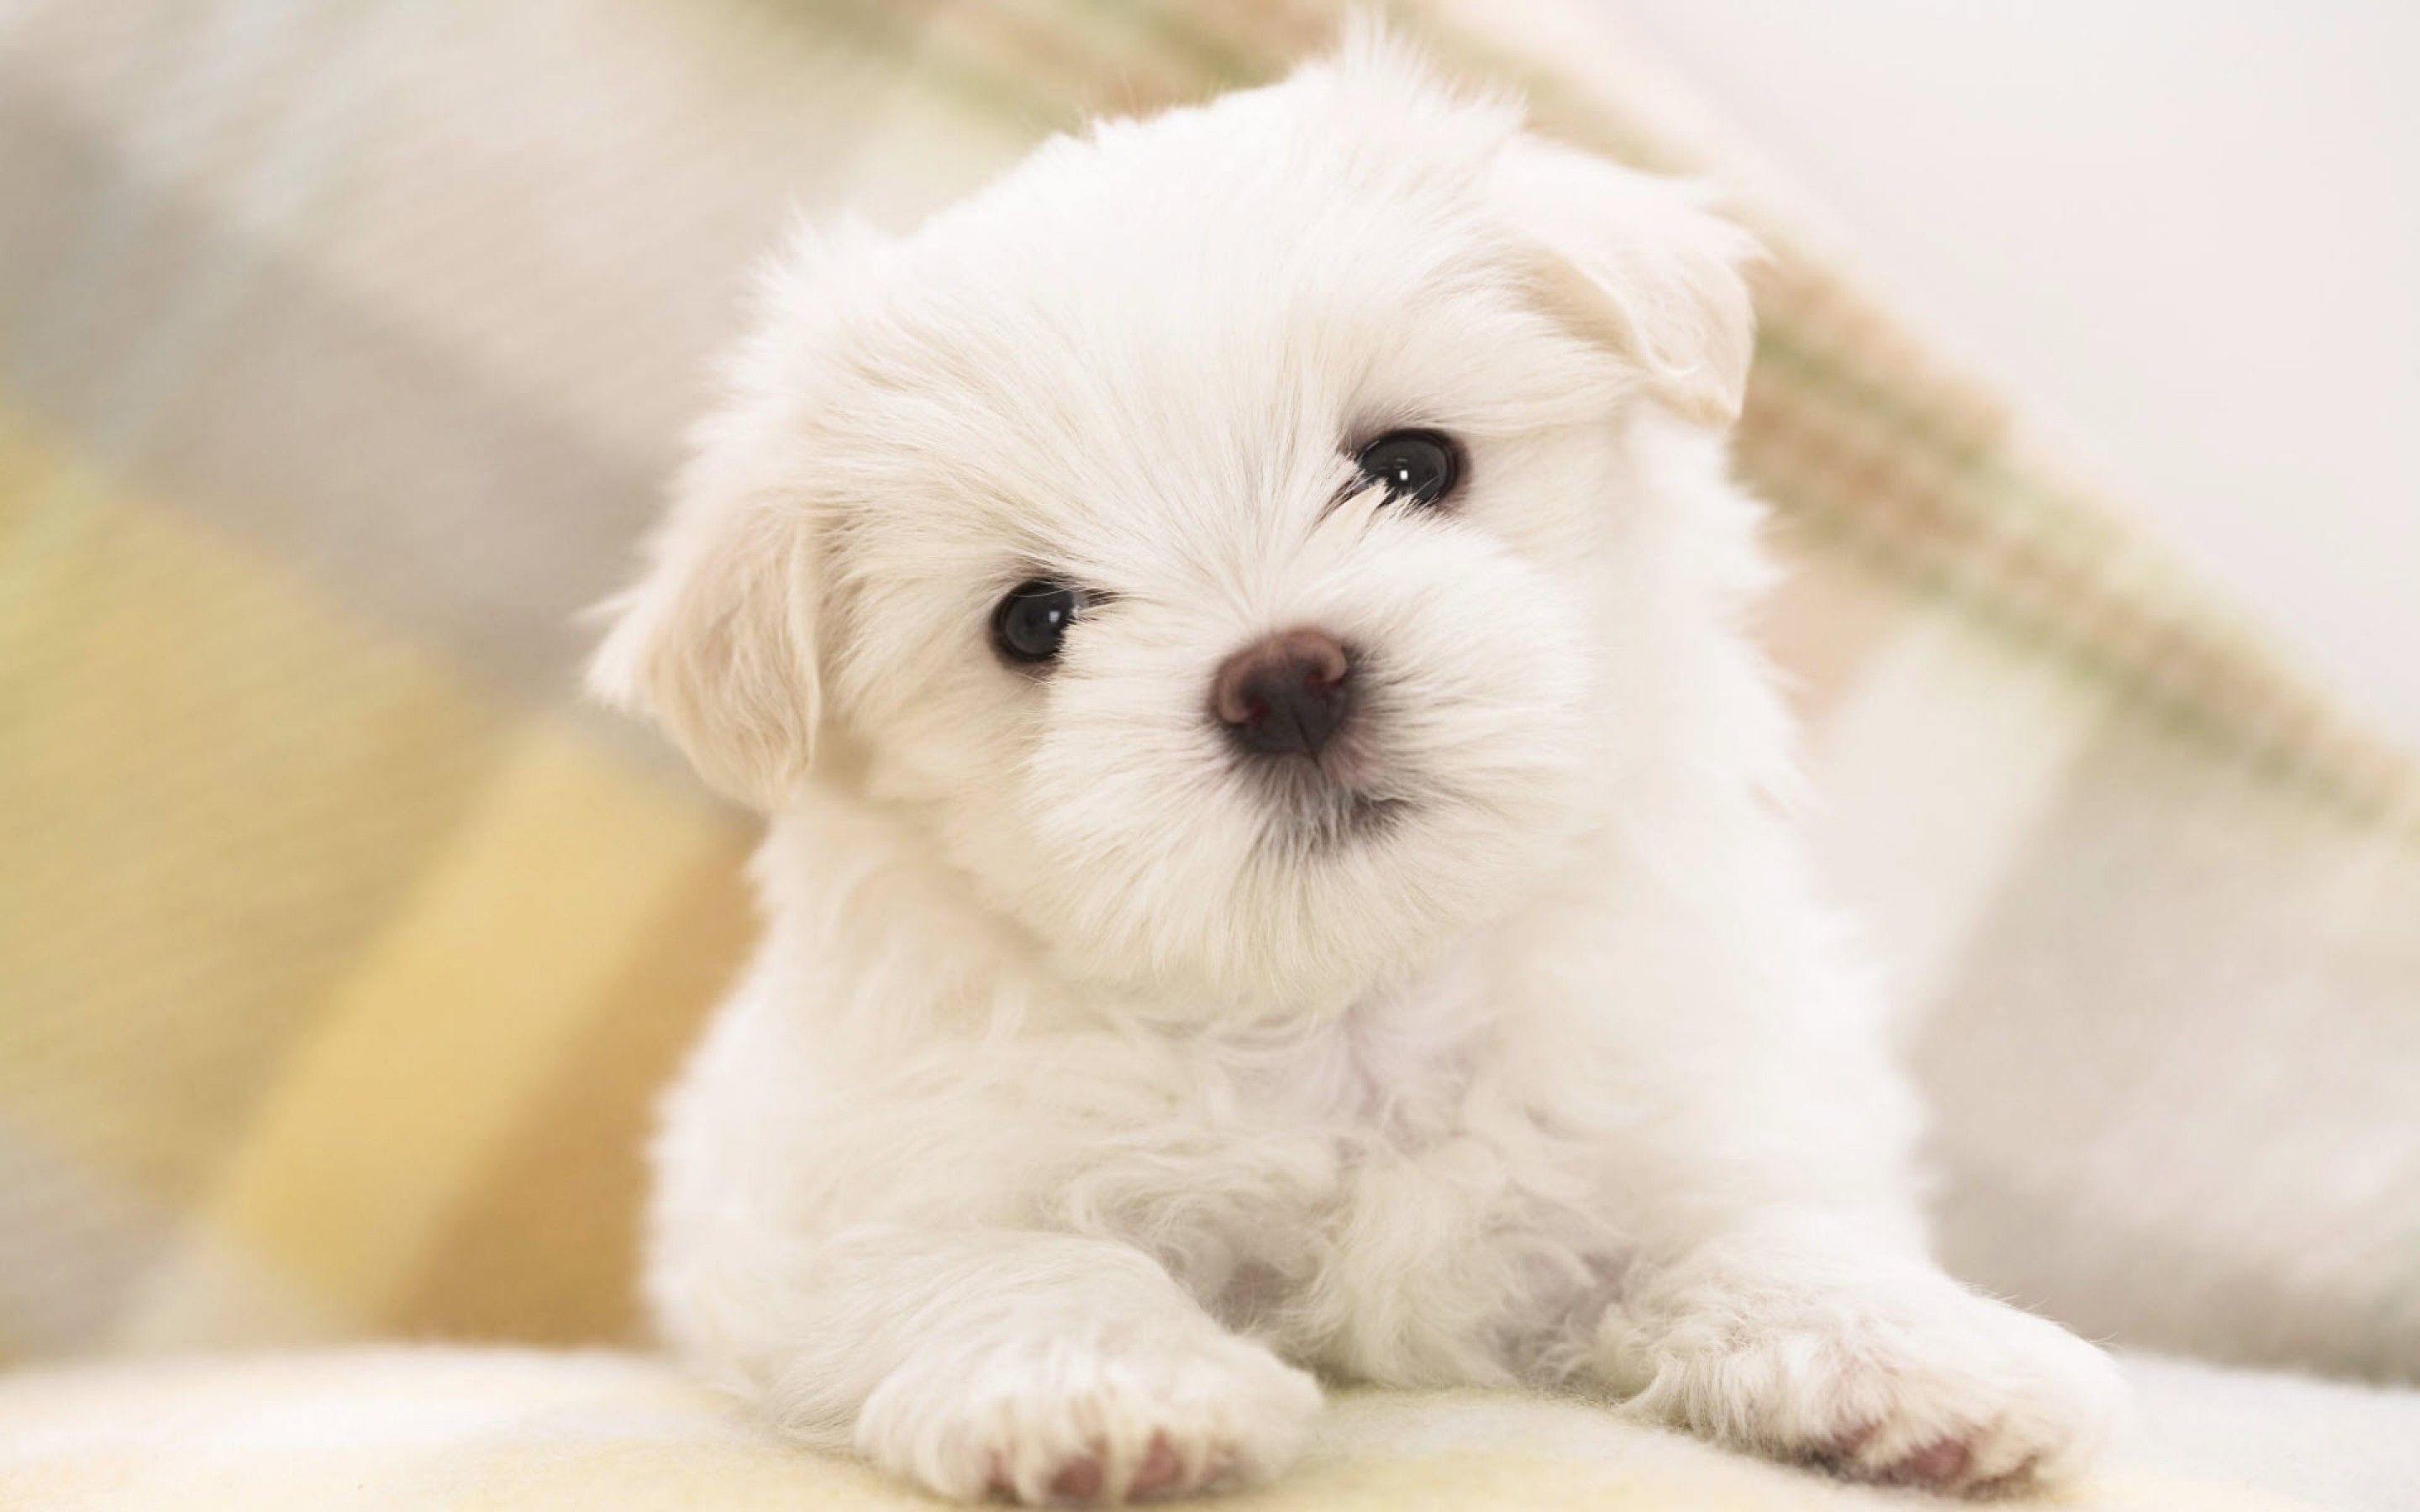 Puppies Wallpapers Free Download